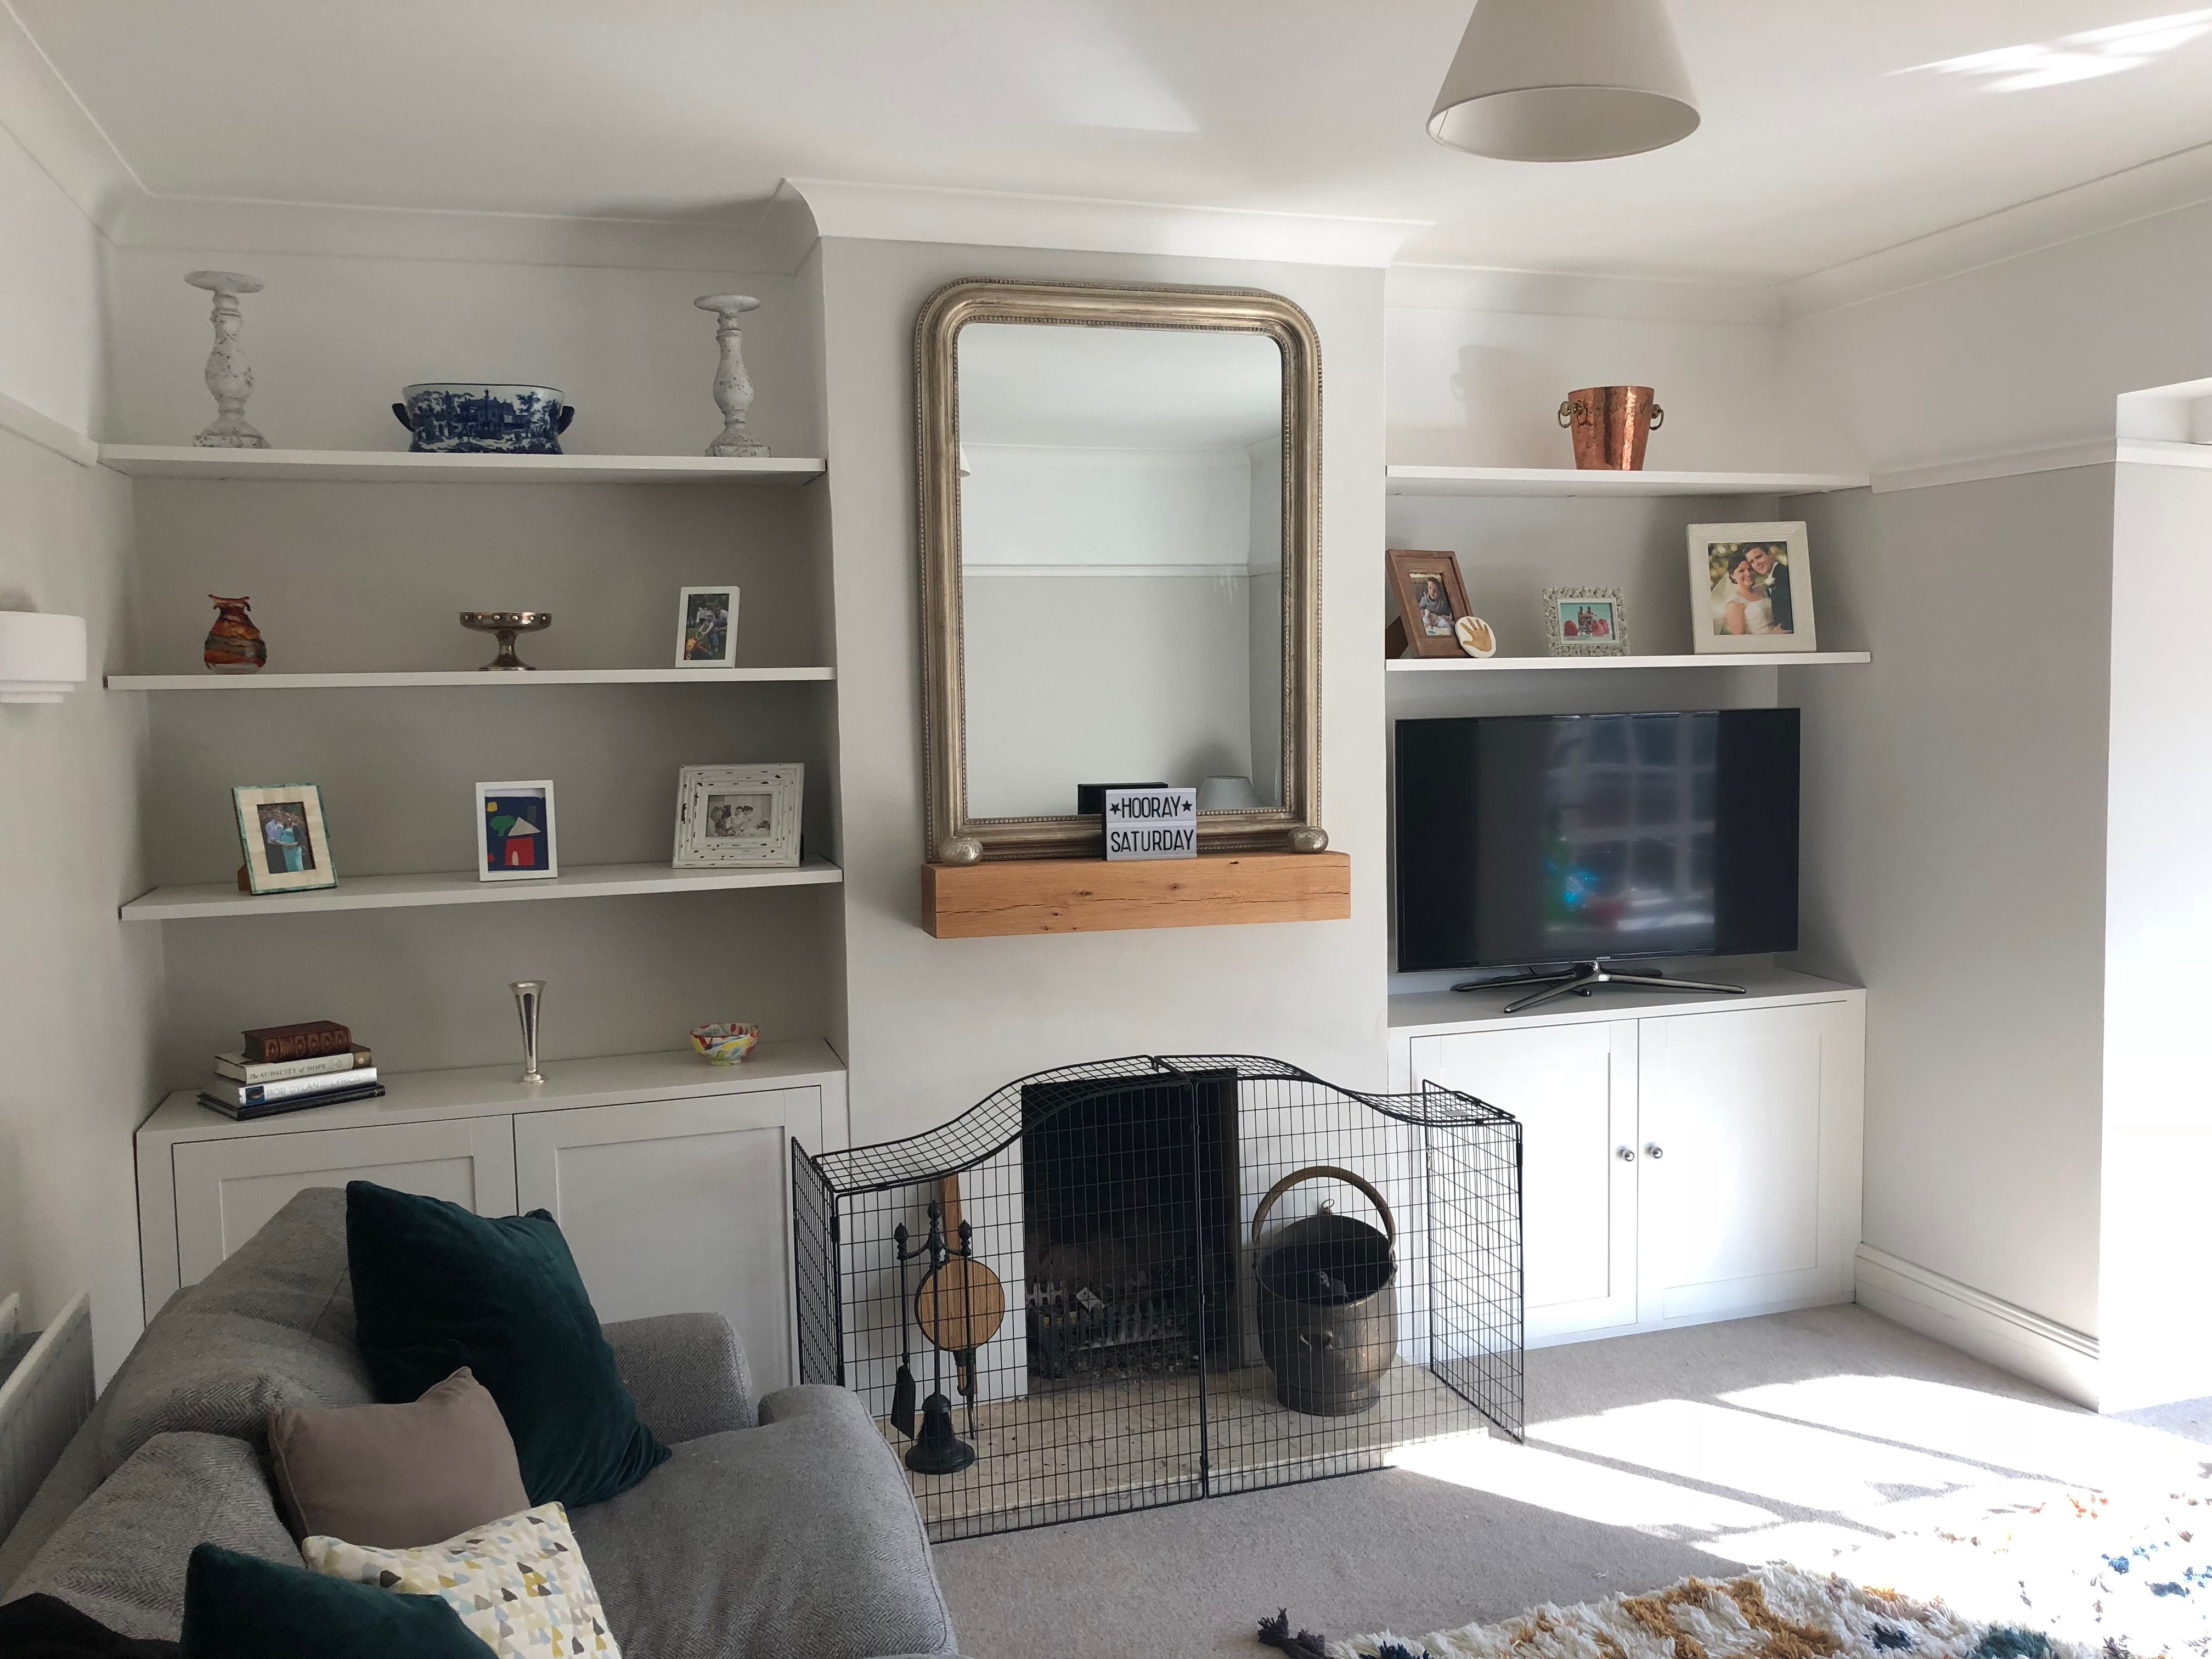 ikea hack knoxhult kitchen wall unit turned built in on wall hacks id=15446